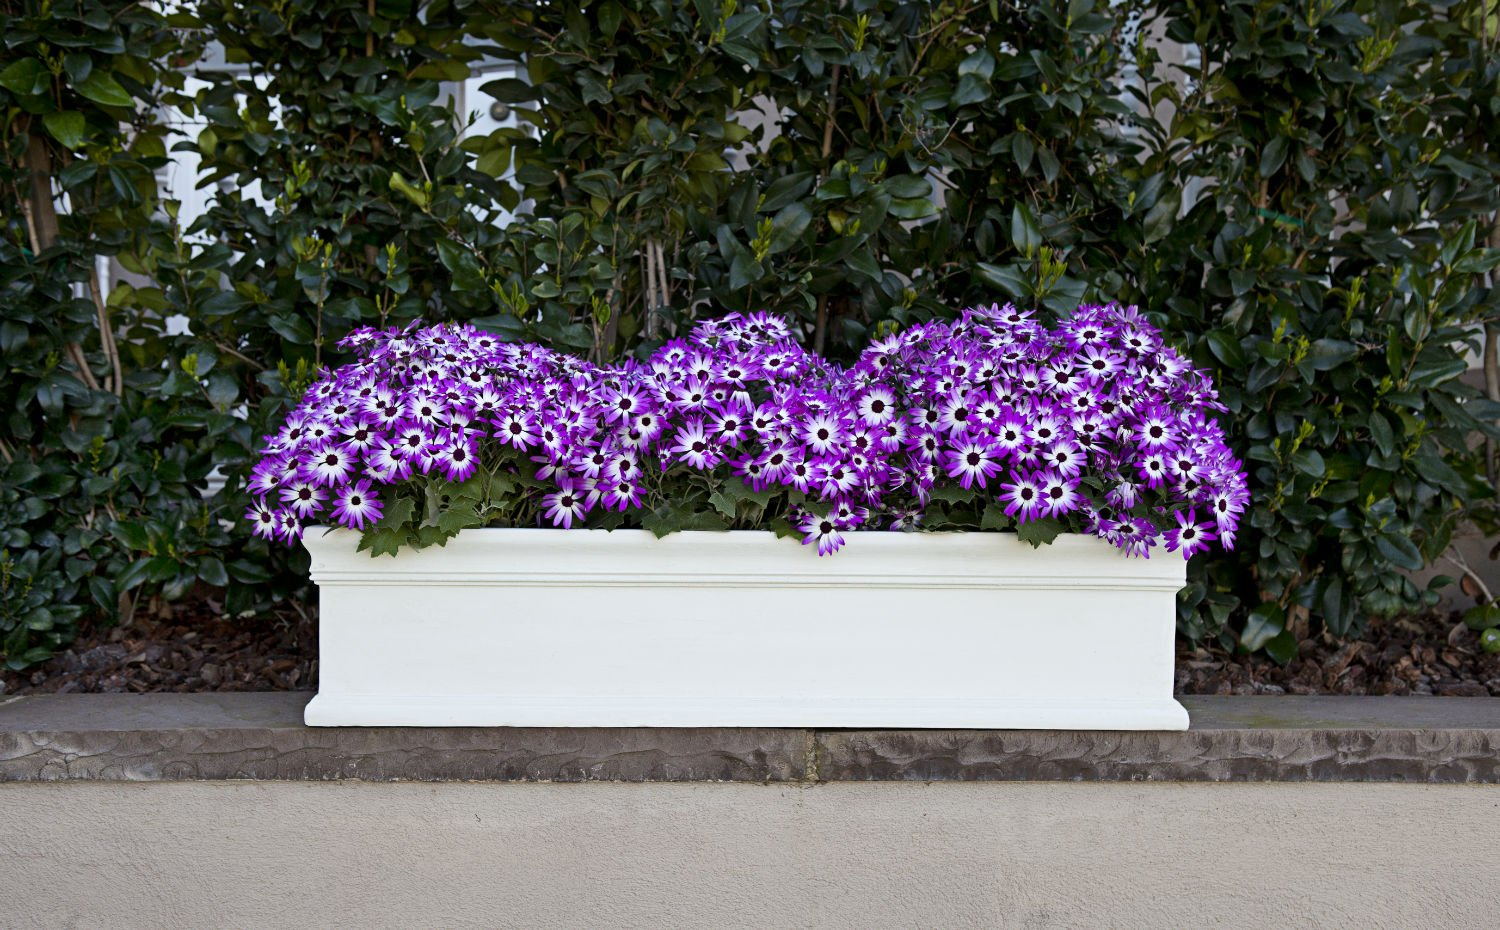 Amedeo Design ResinStone 2509-15L Classic Window Box, 37 by 9 by 9-Inch, Limestone by Amedeo Design